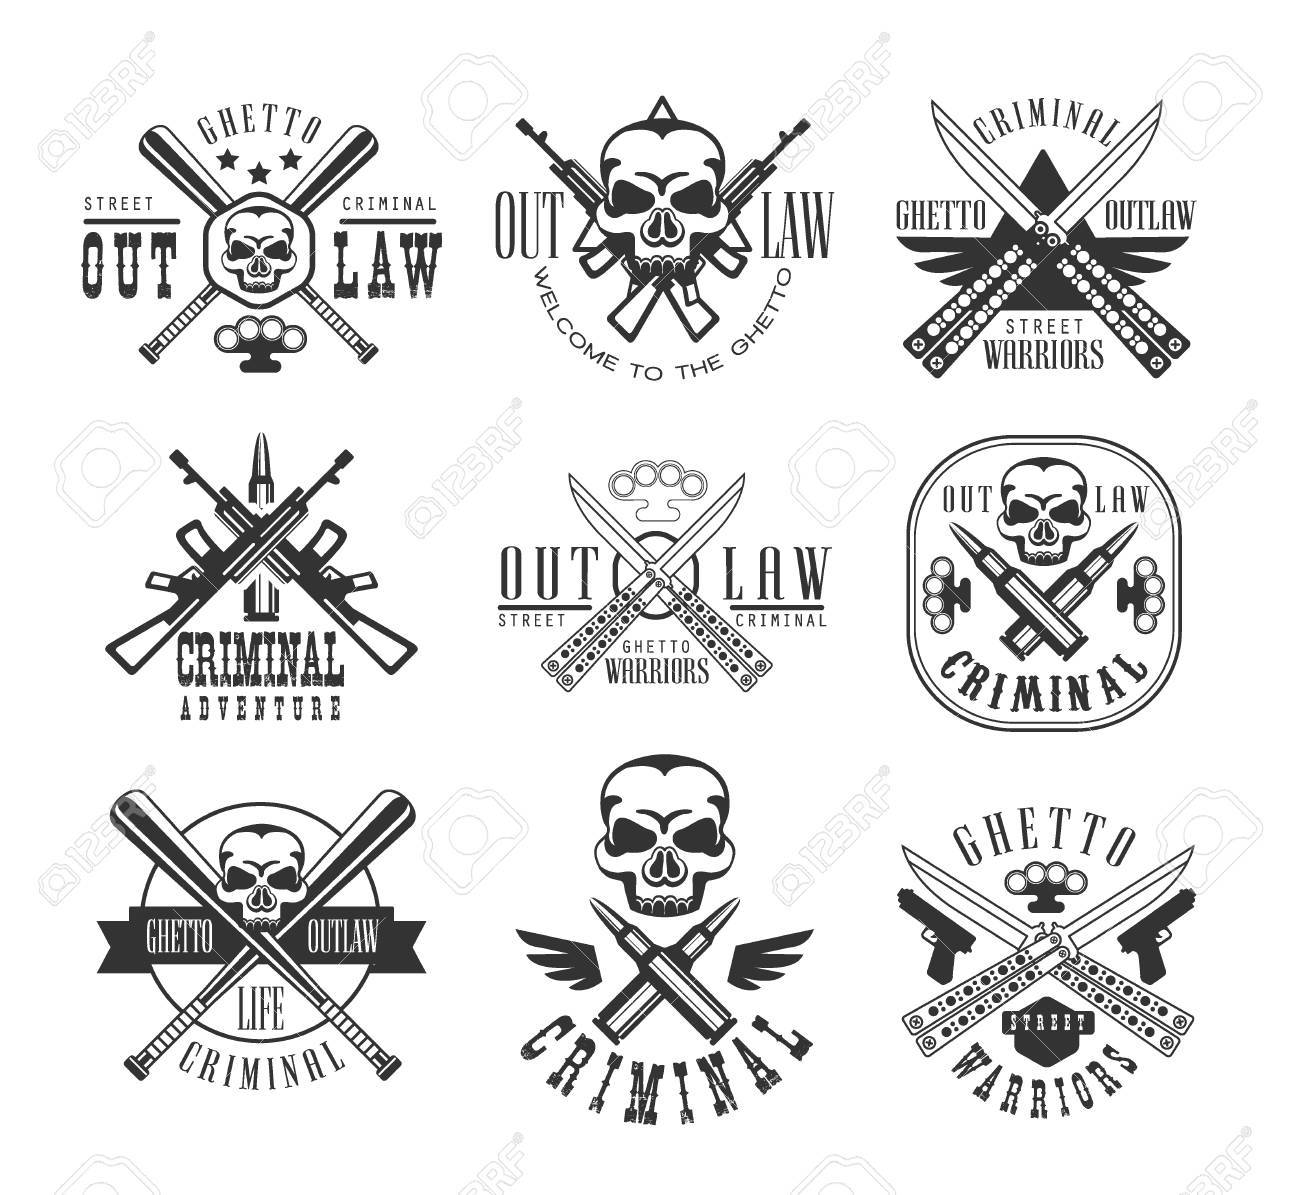 Street outlaw criminal club black and white sign design templates street outlaw criminal club black and white sign design templates with text and weapon silhouettes sciox Gallery